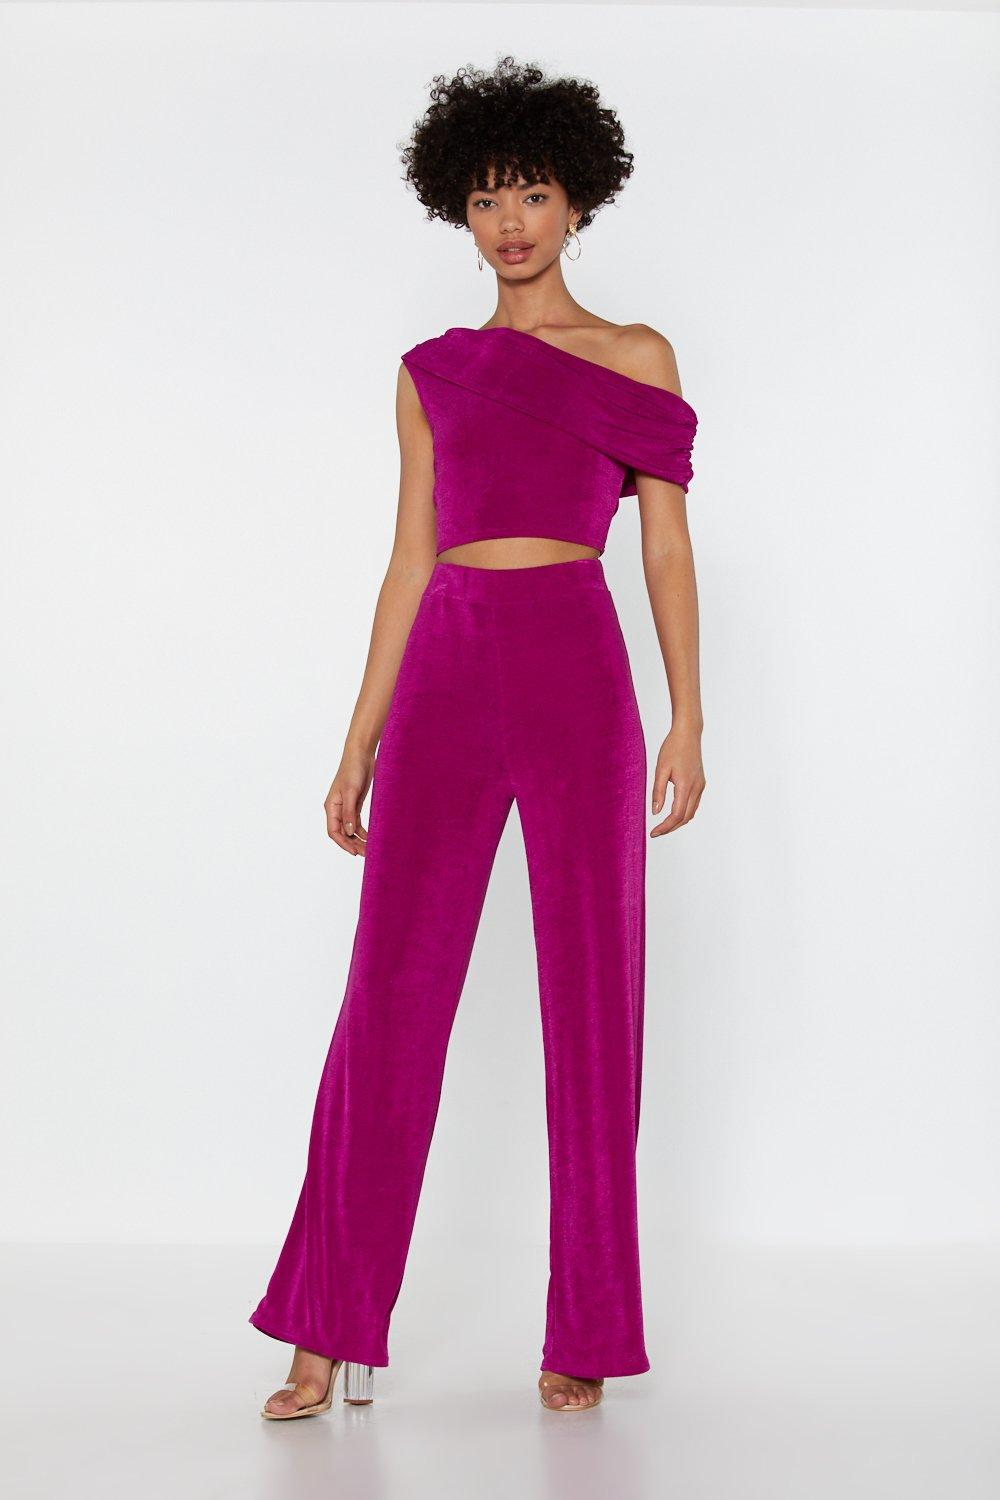 fe3bcb6e524772 Here For You One Shoulder Top and Pants Set